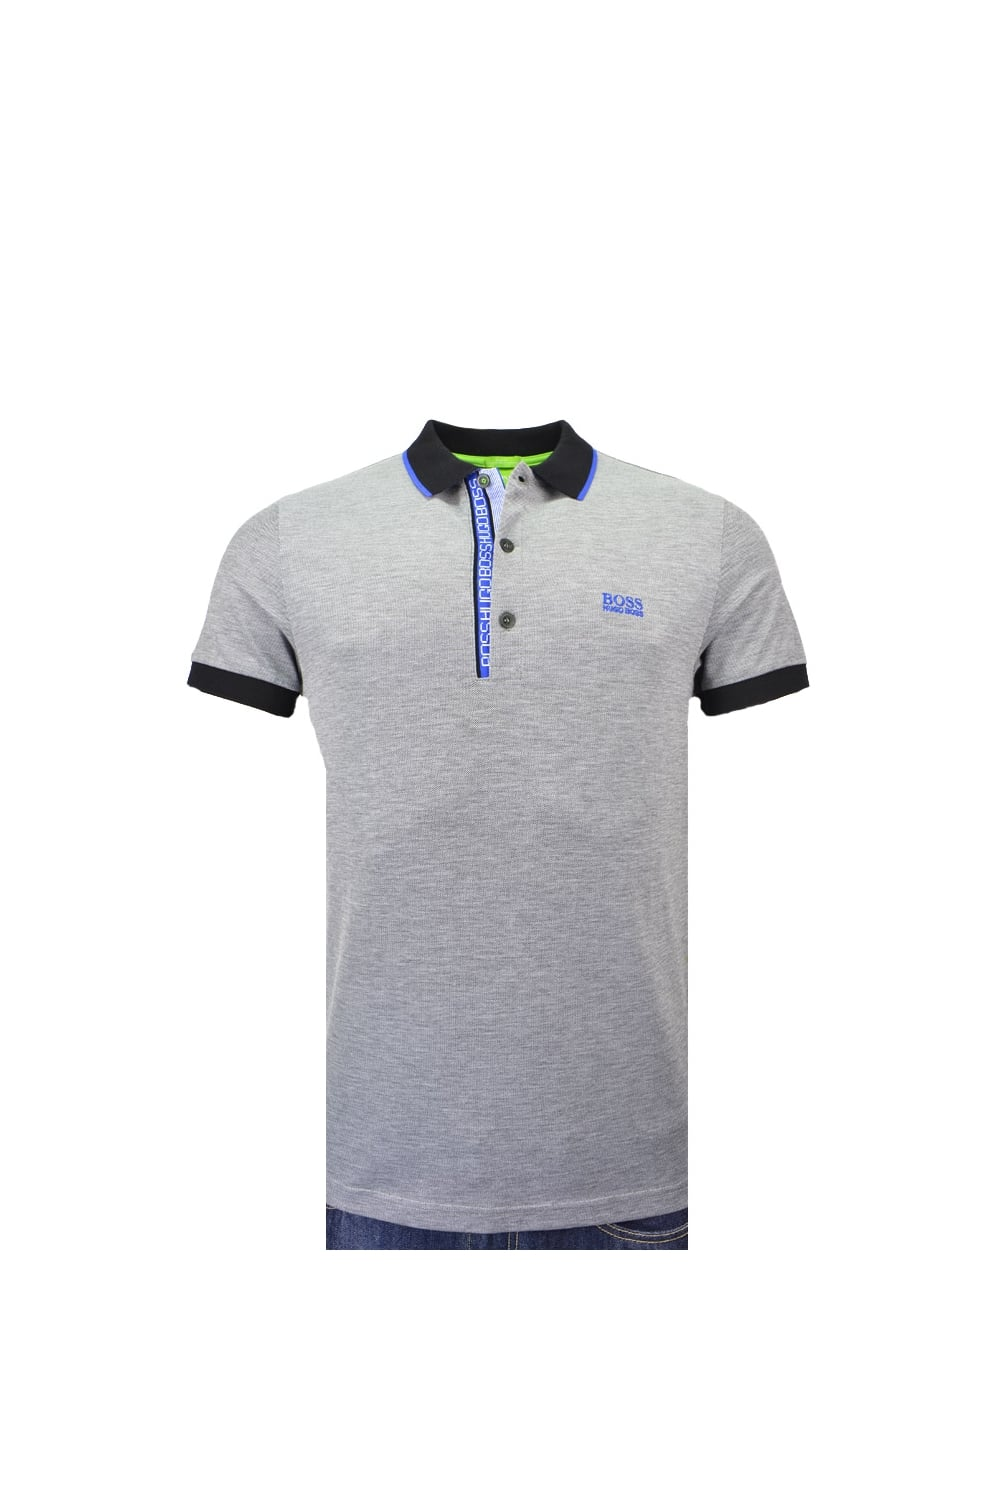 df9a0819 Hugo Boss Green Paule 4 Polo Shirt Slim Fit - Clothing from Michael ...